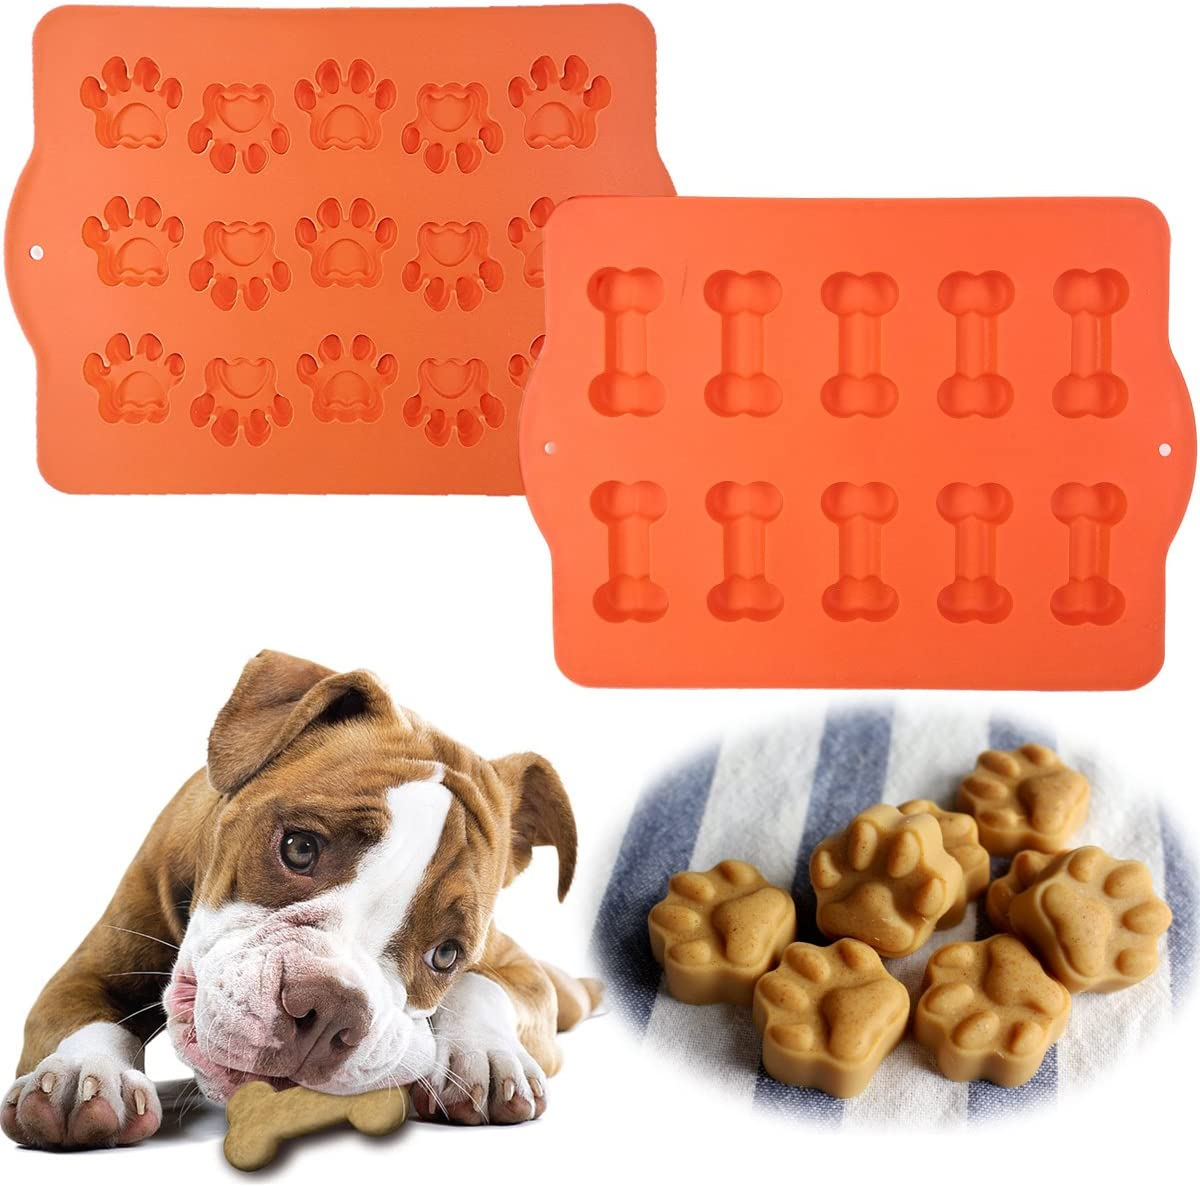 Hugs (2 Pack) Silicone Dog Treat Pans, 1 Bone Tray & 1 Paw Print Tray, Baking Molds For Pets, Freezer Tray Or Oven Sheet